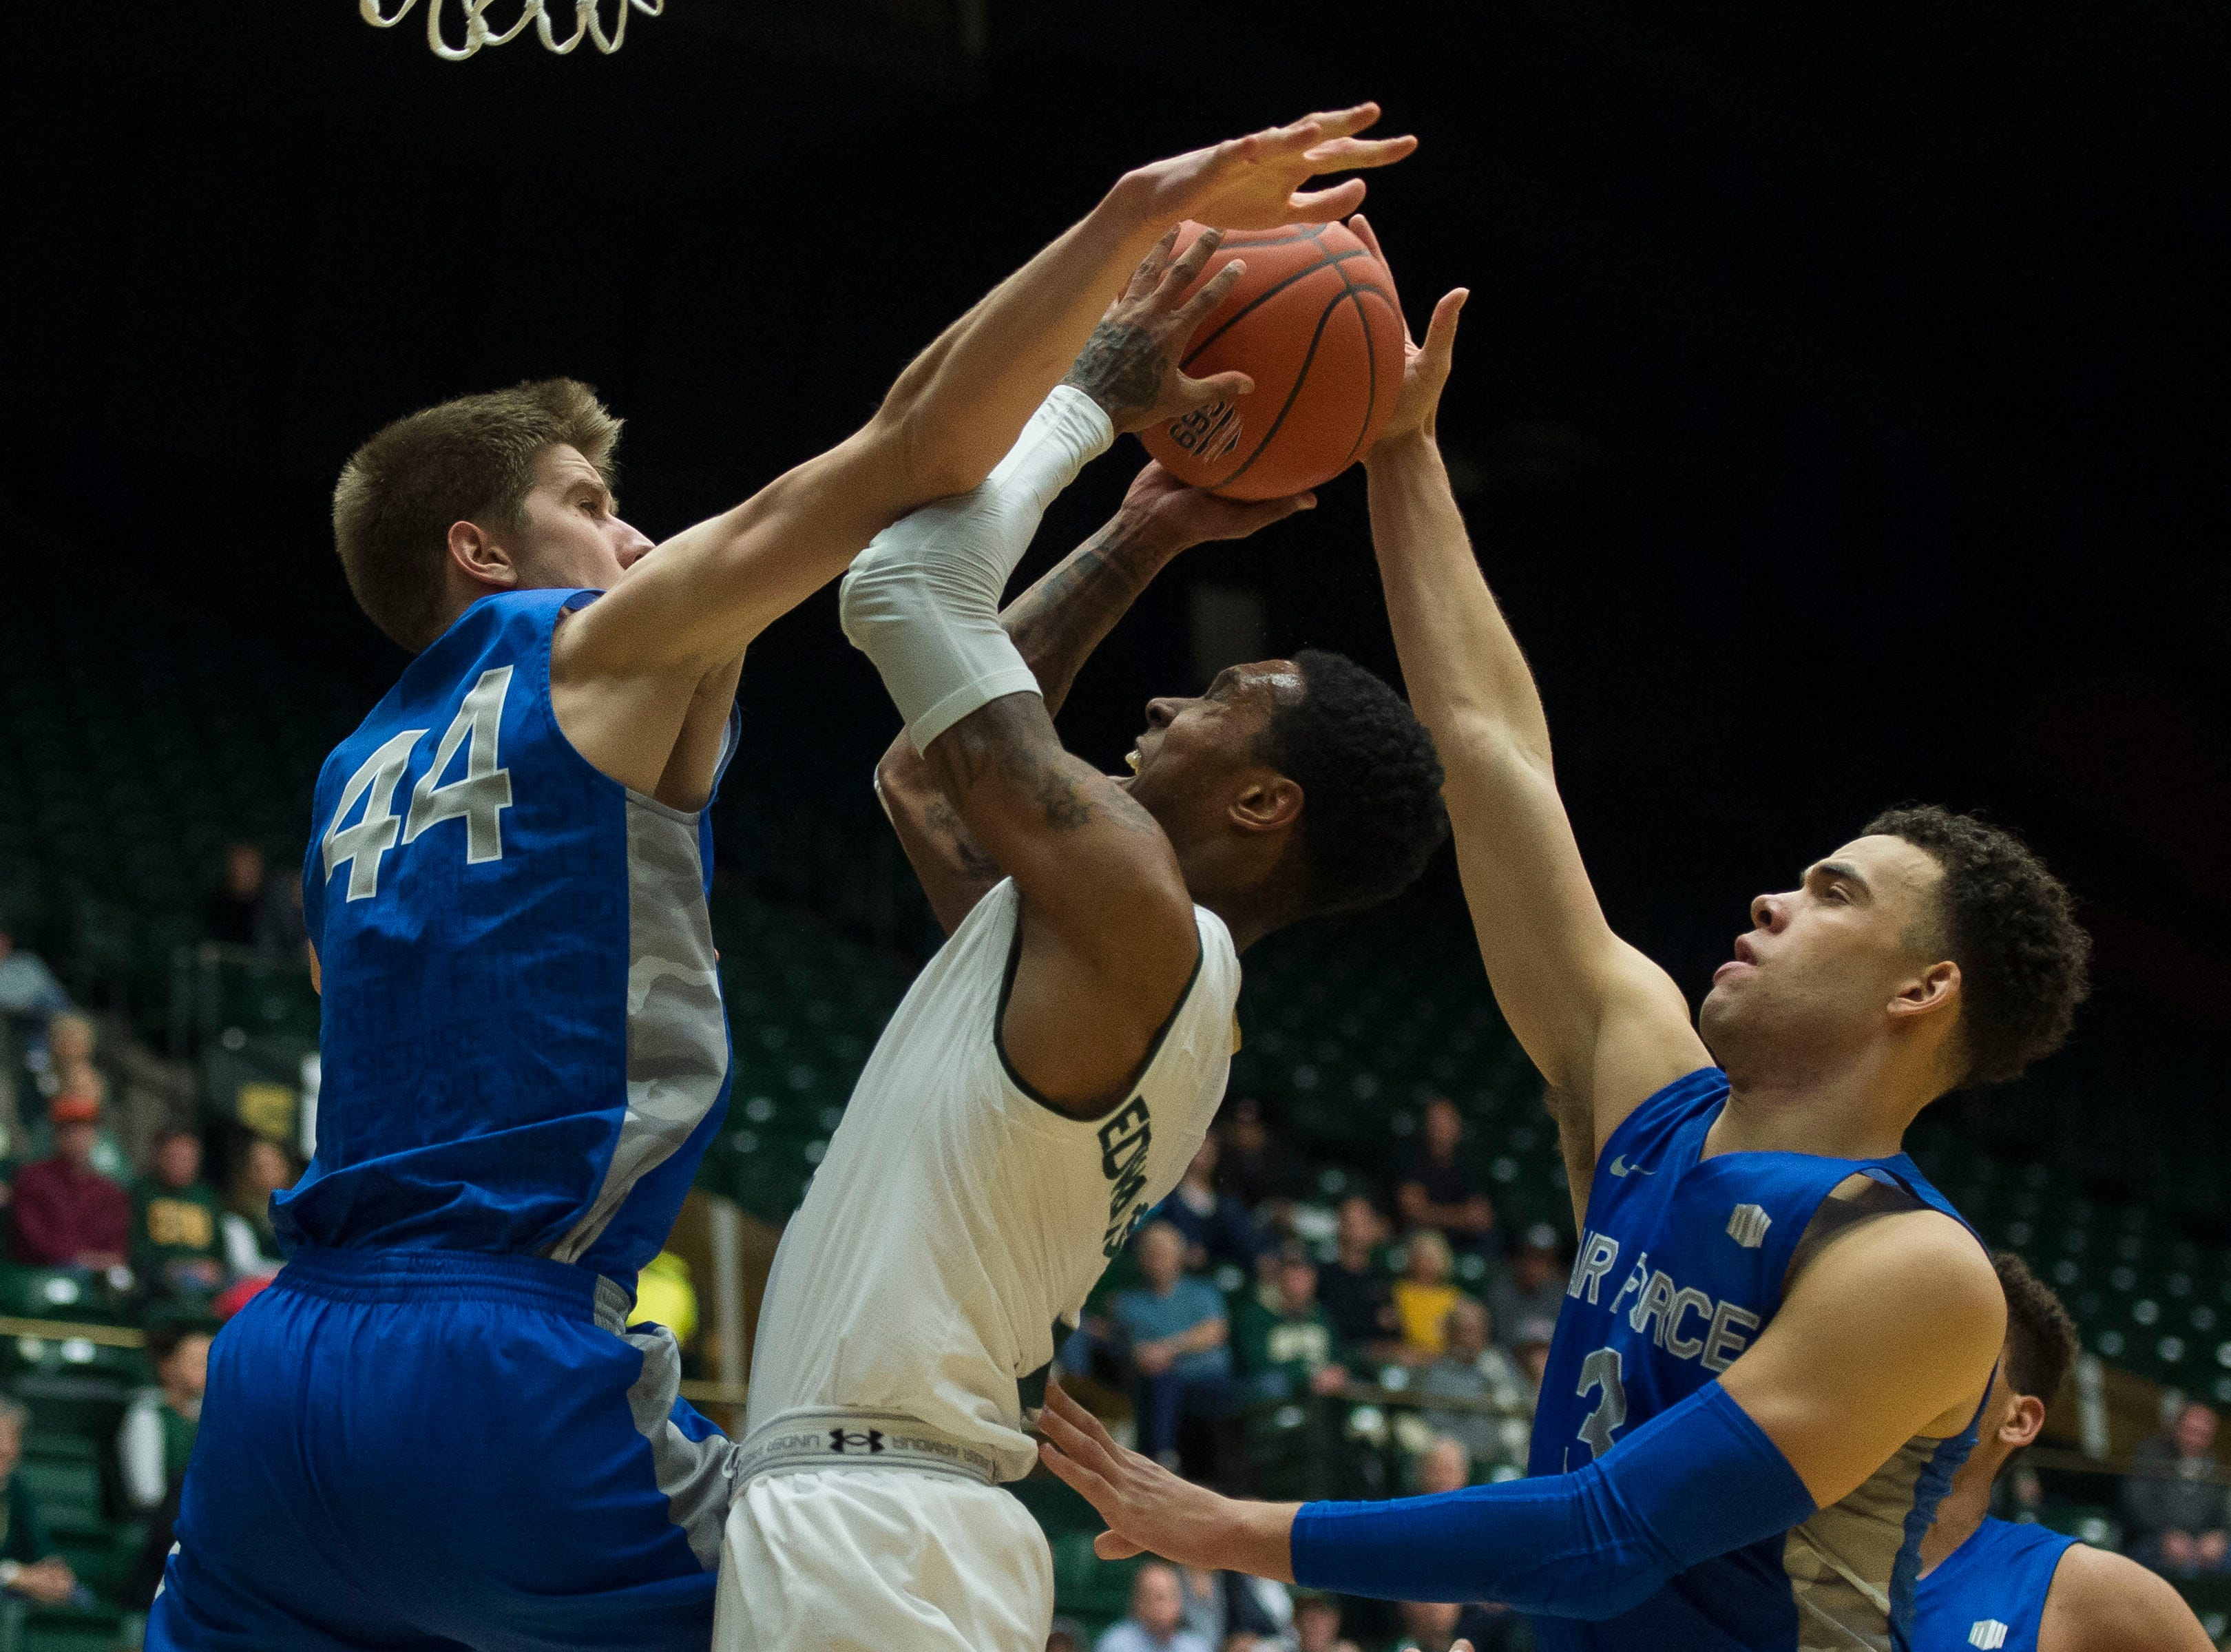 Colorado State University junior guard Hyron Edwards (0) draws the foul from Air Force Academy players on Tuesday, Jan. 8, 2019, at Moby Arena in Fort Collins, Colo.